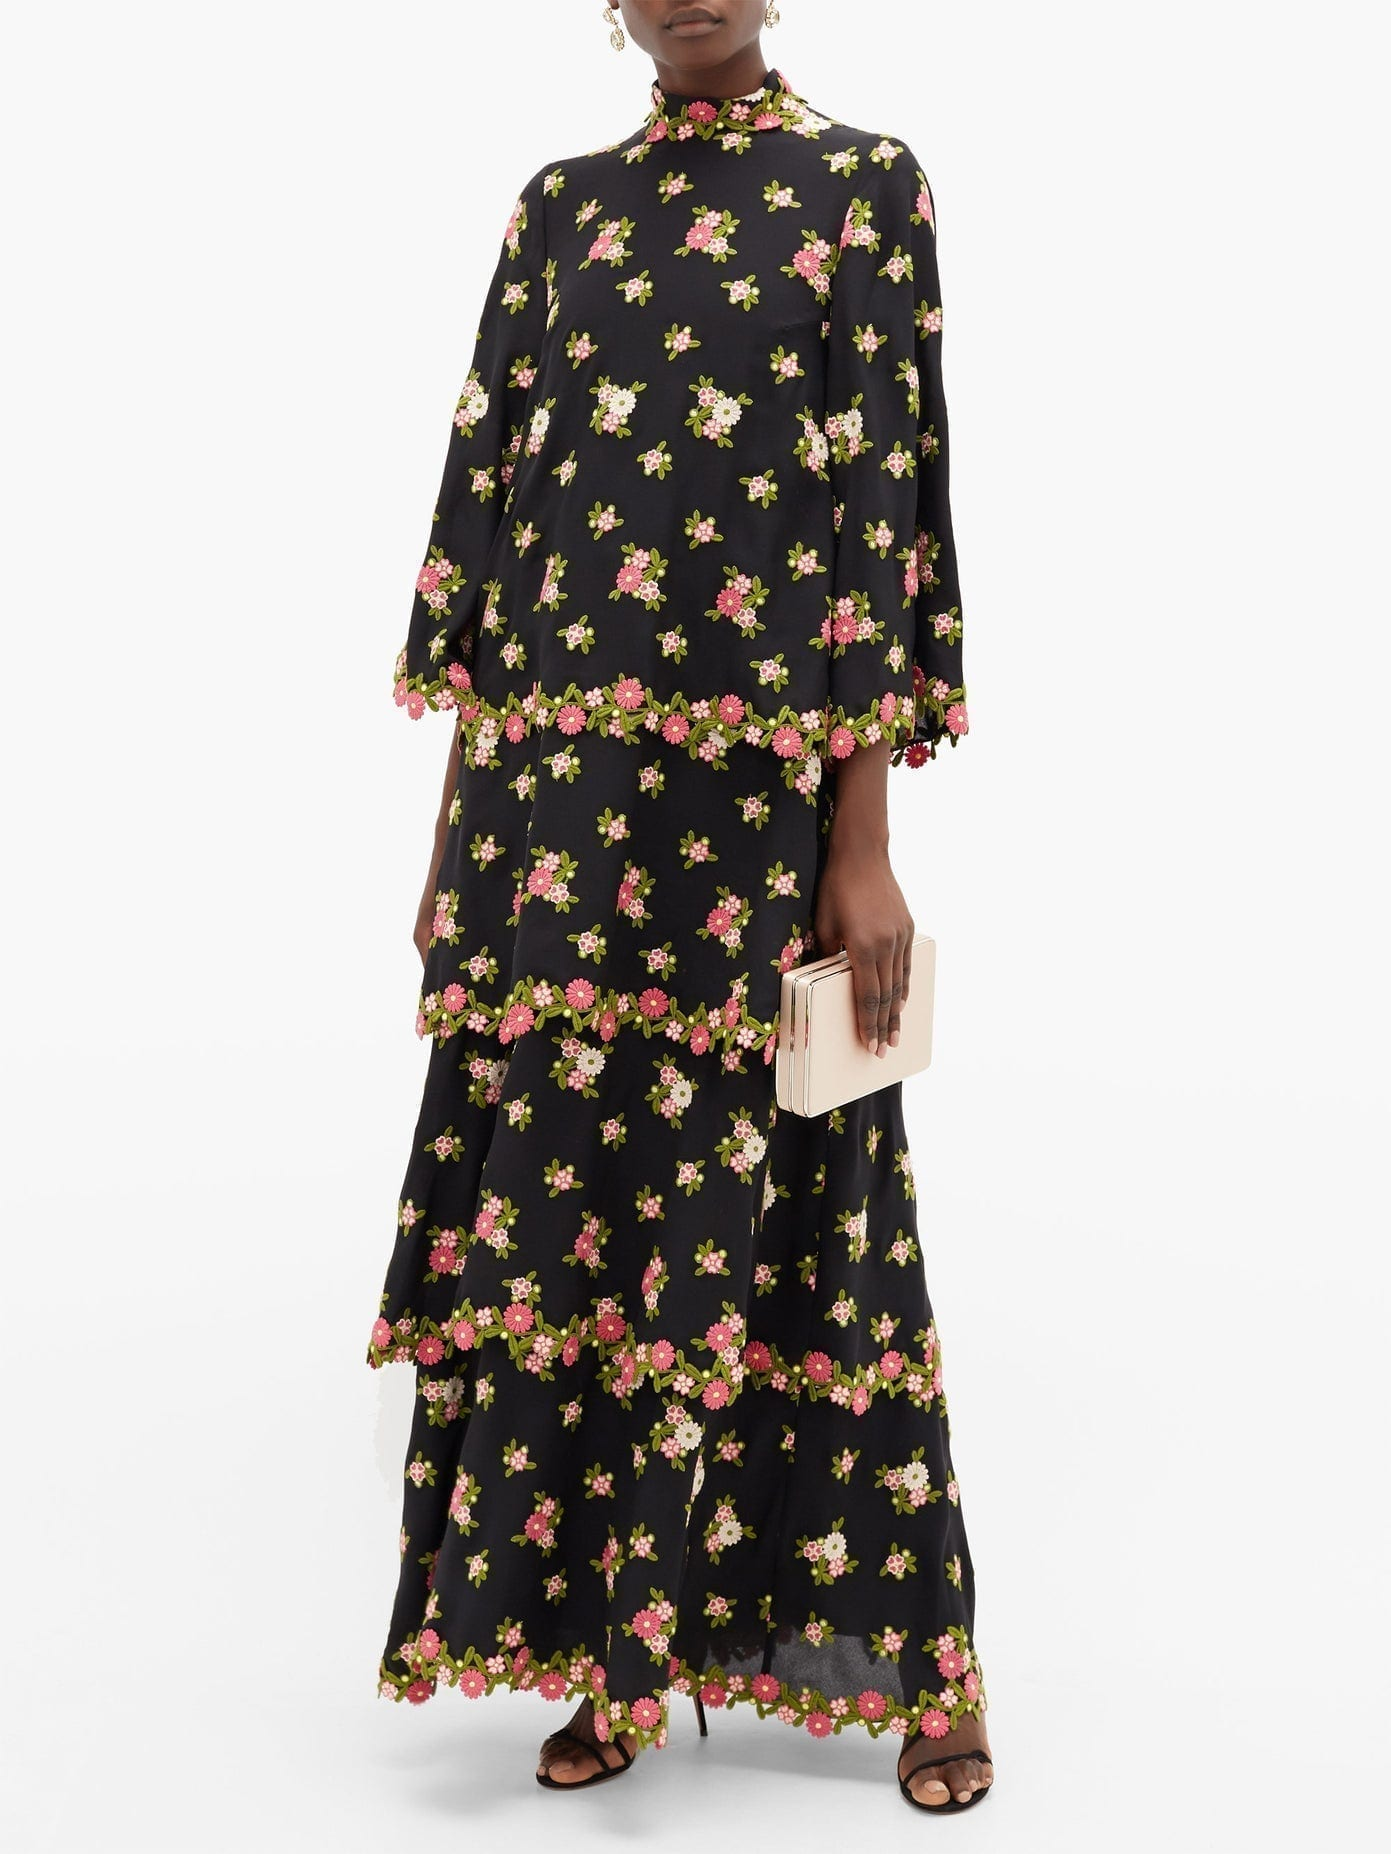 ANDREW GN Tiered Floral-Embroidered Silk-Blend Crepe Dress